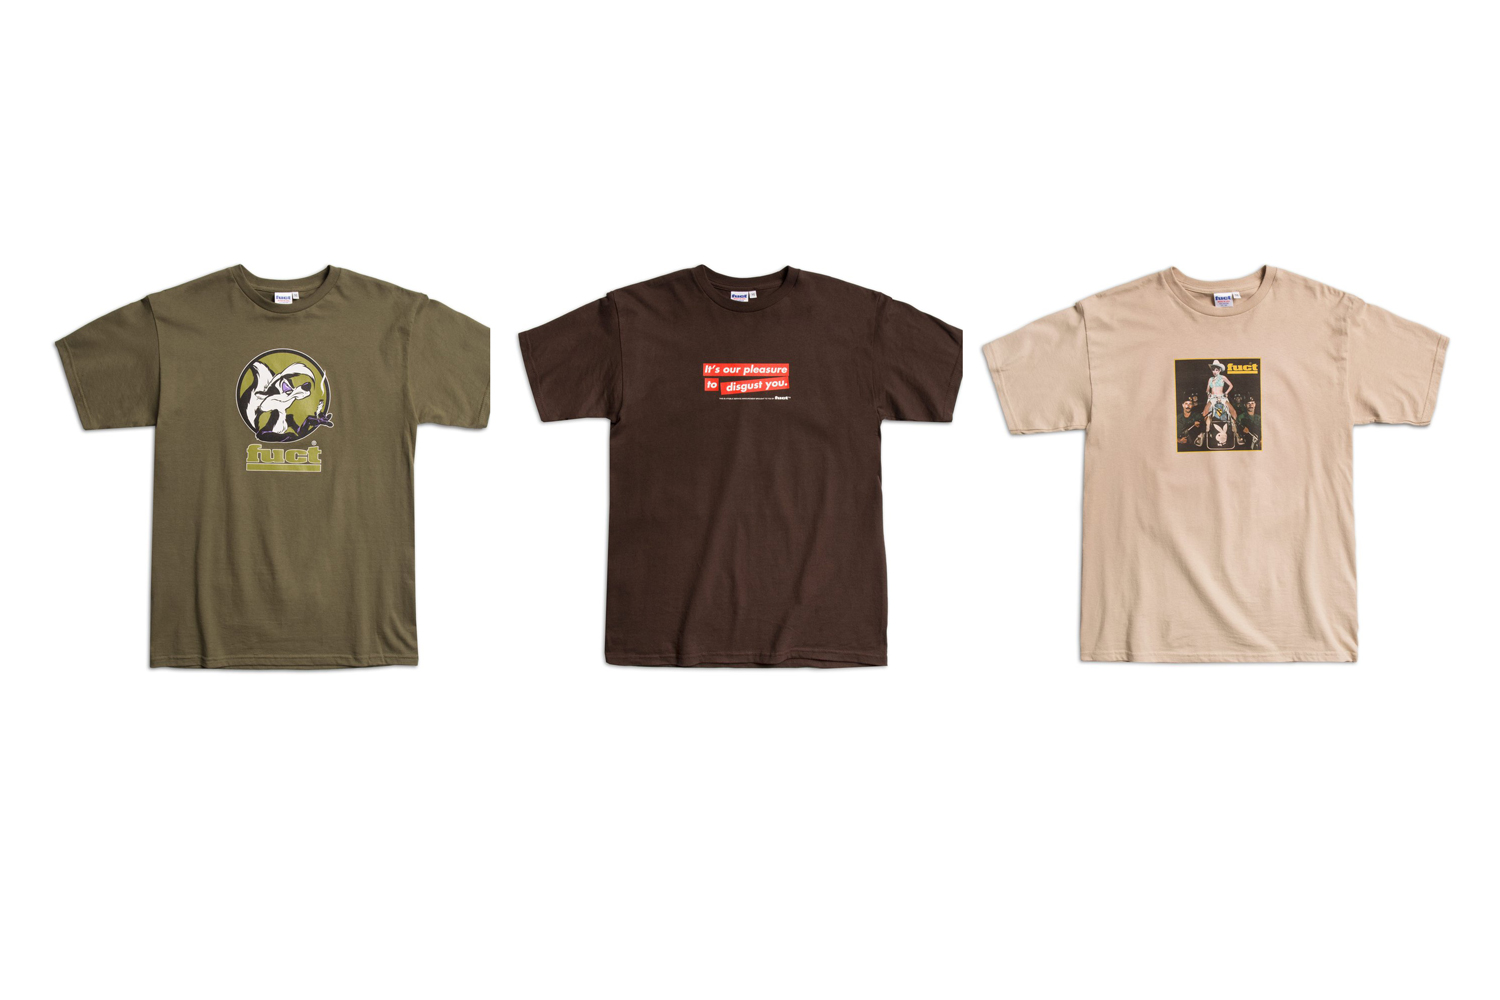 Another Collection of Vintage FUCT T-shirts Will Release Online